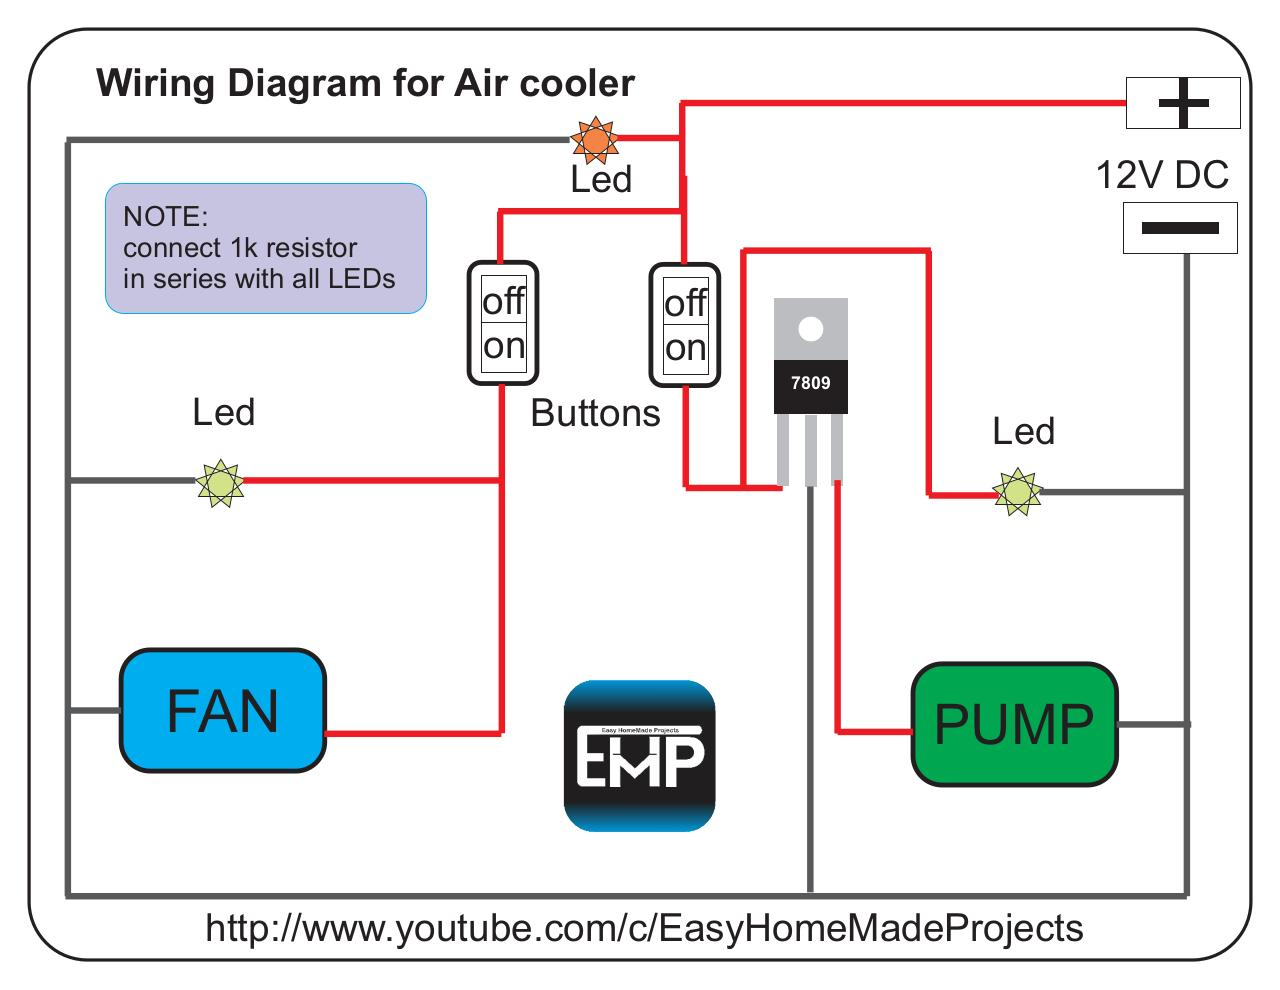 Wiringcdr By Usman Ahmad Wiring Diagram For Mini Air Cooler Pdf Guide Document Preview Coolerpdf Page 1